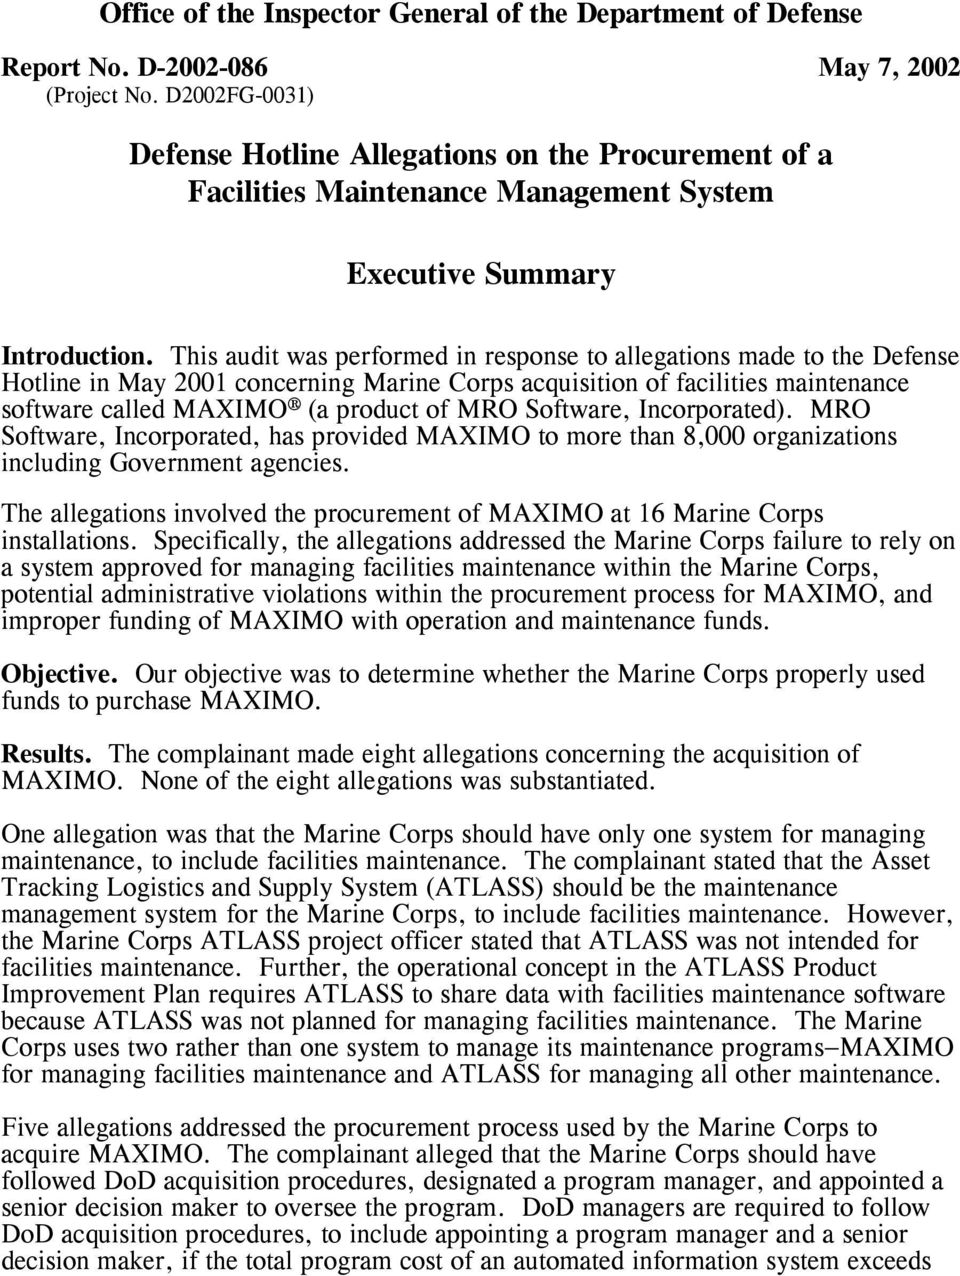 This audit was performed in response to allegations made to the Defense Hotline in May 2001 concerning Marine Corps acquisition of facilities maintenance software called MAXIMO (a product of MRO